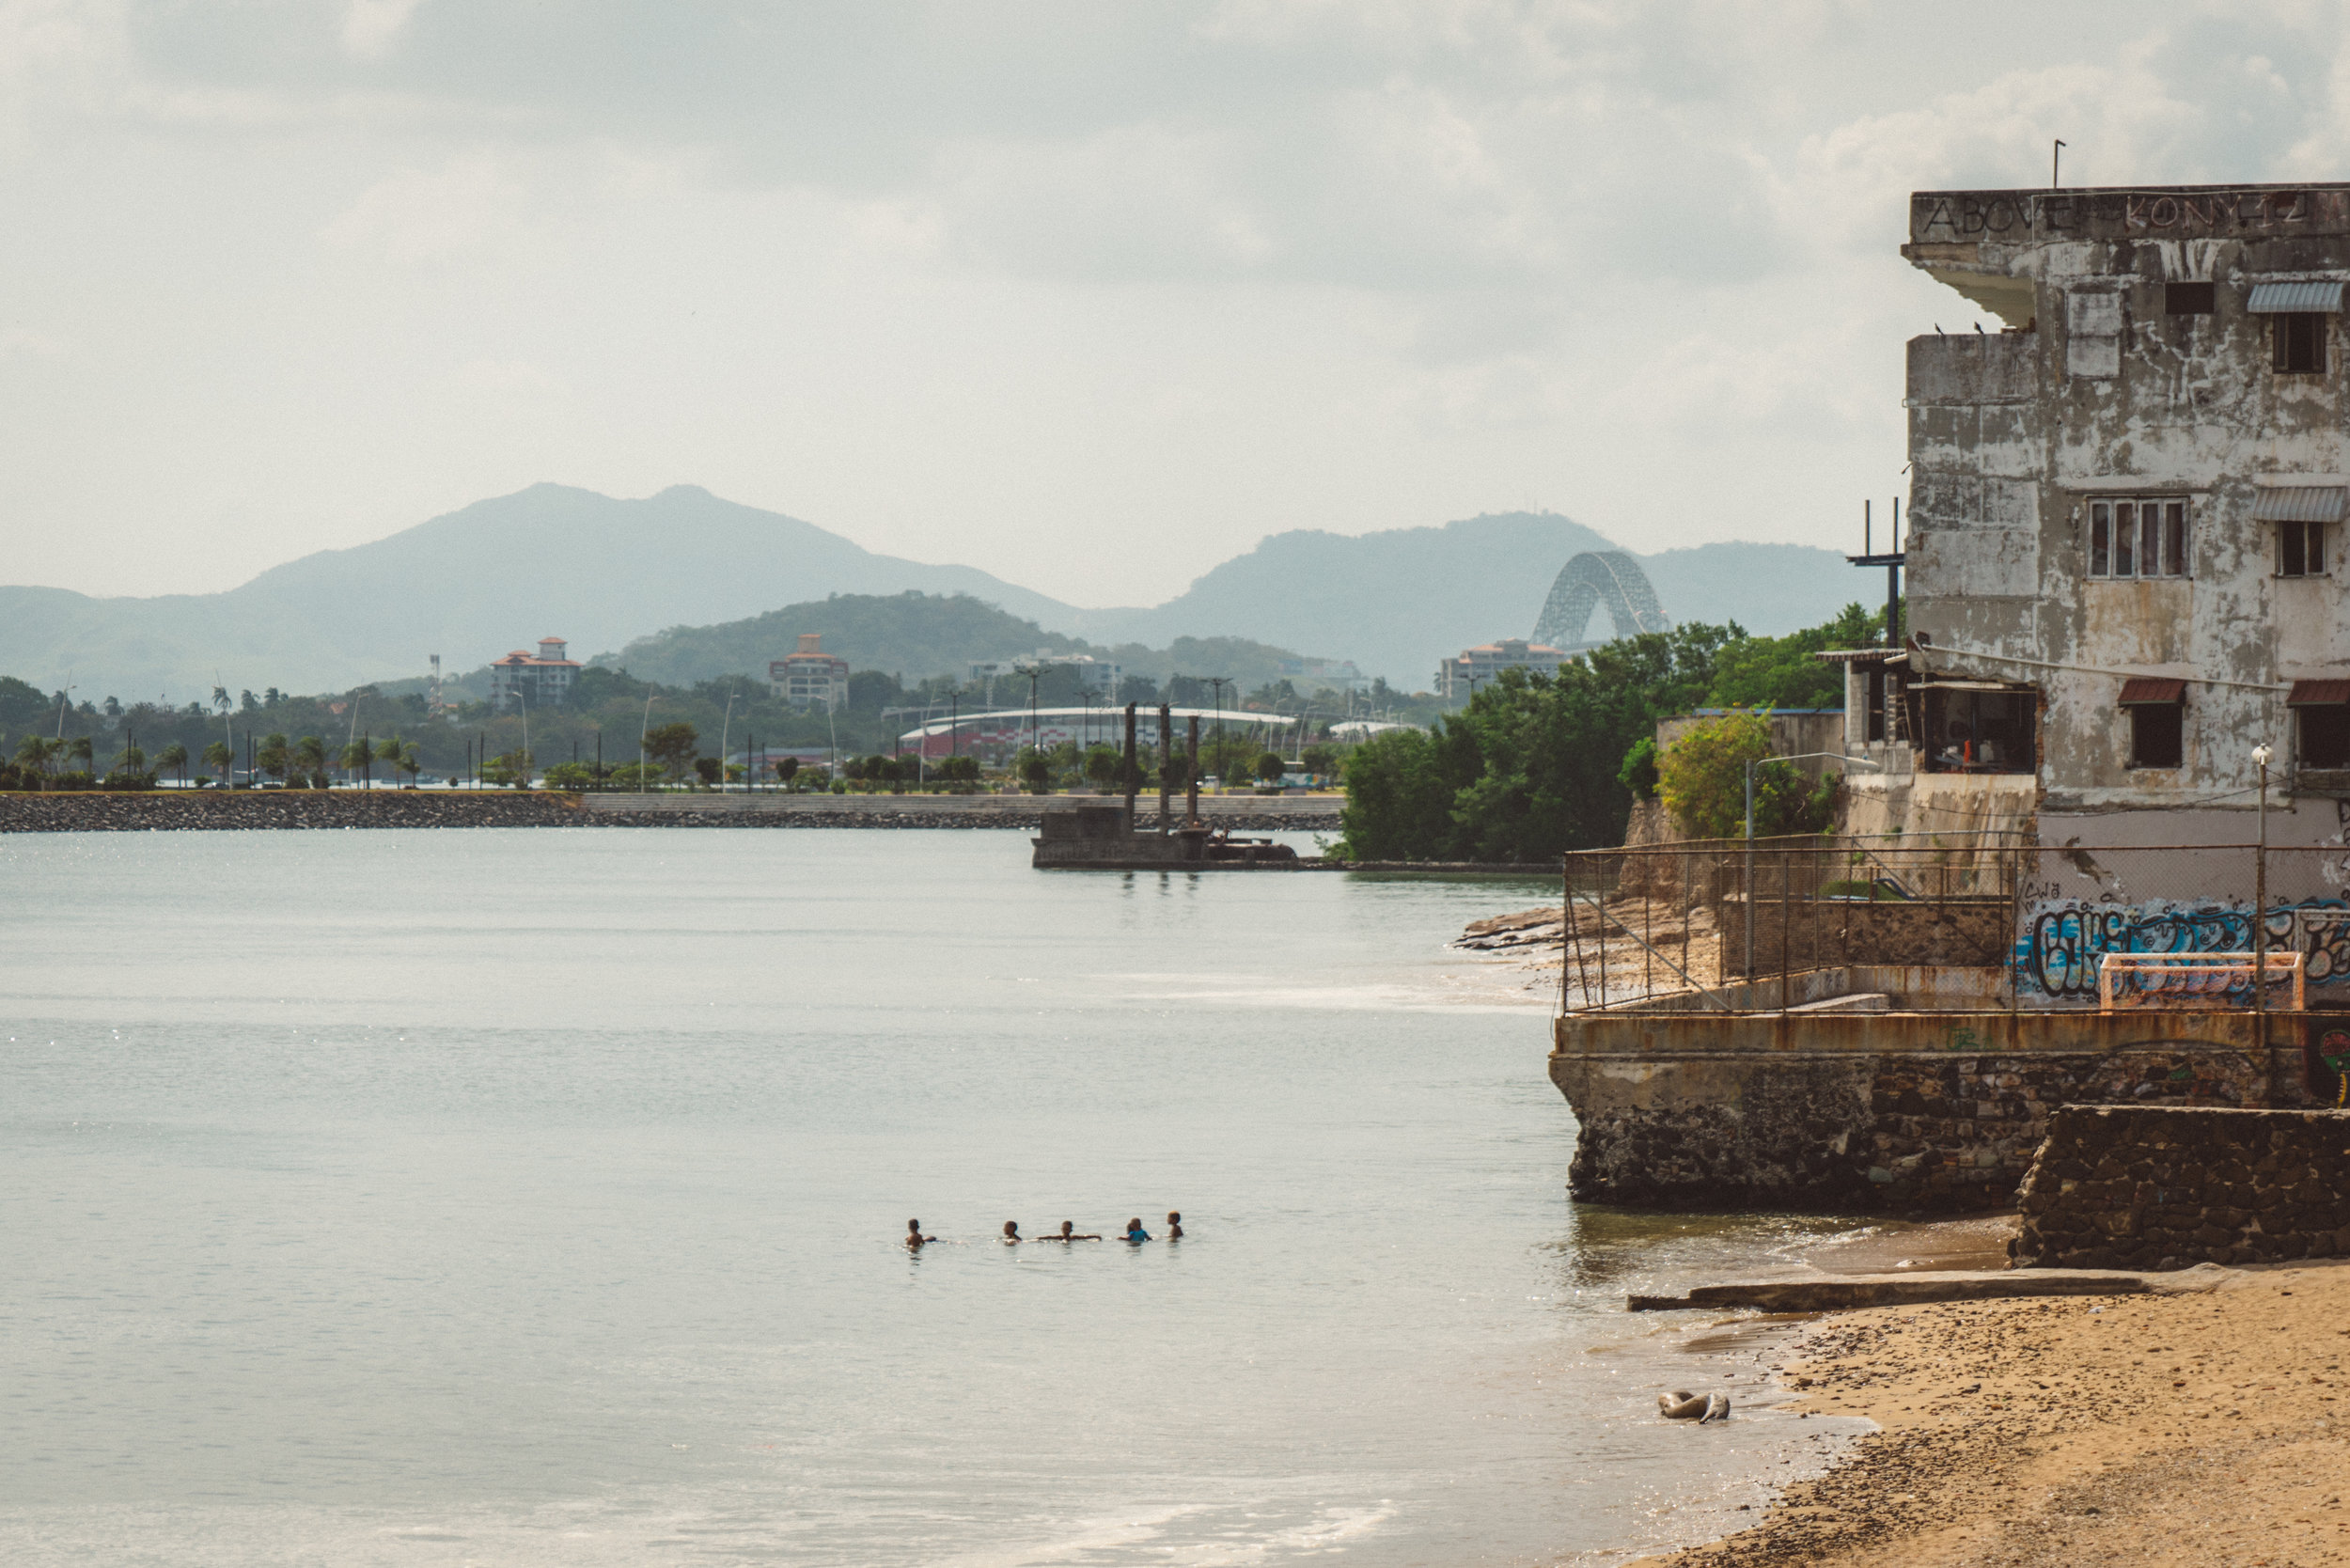 Some kids swimming off Casco Viejo. The Bridge of the Americas, which spans the Canal, is visible in the background.